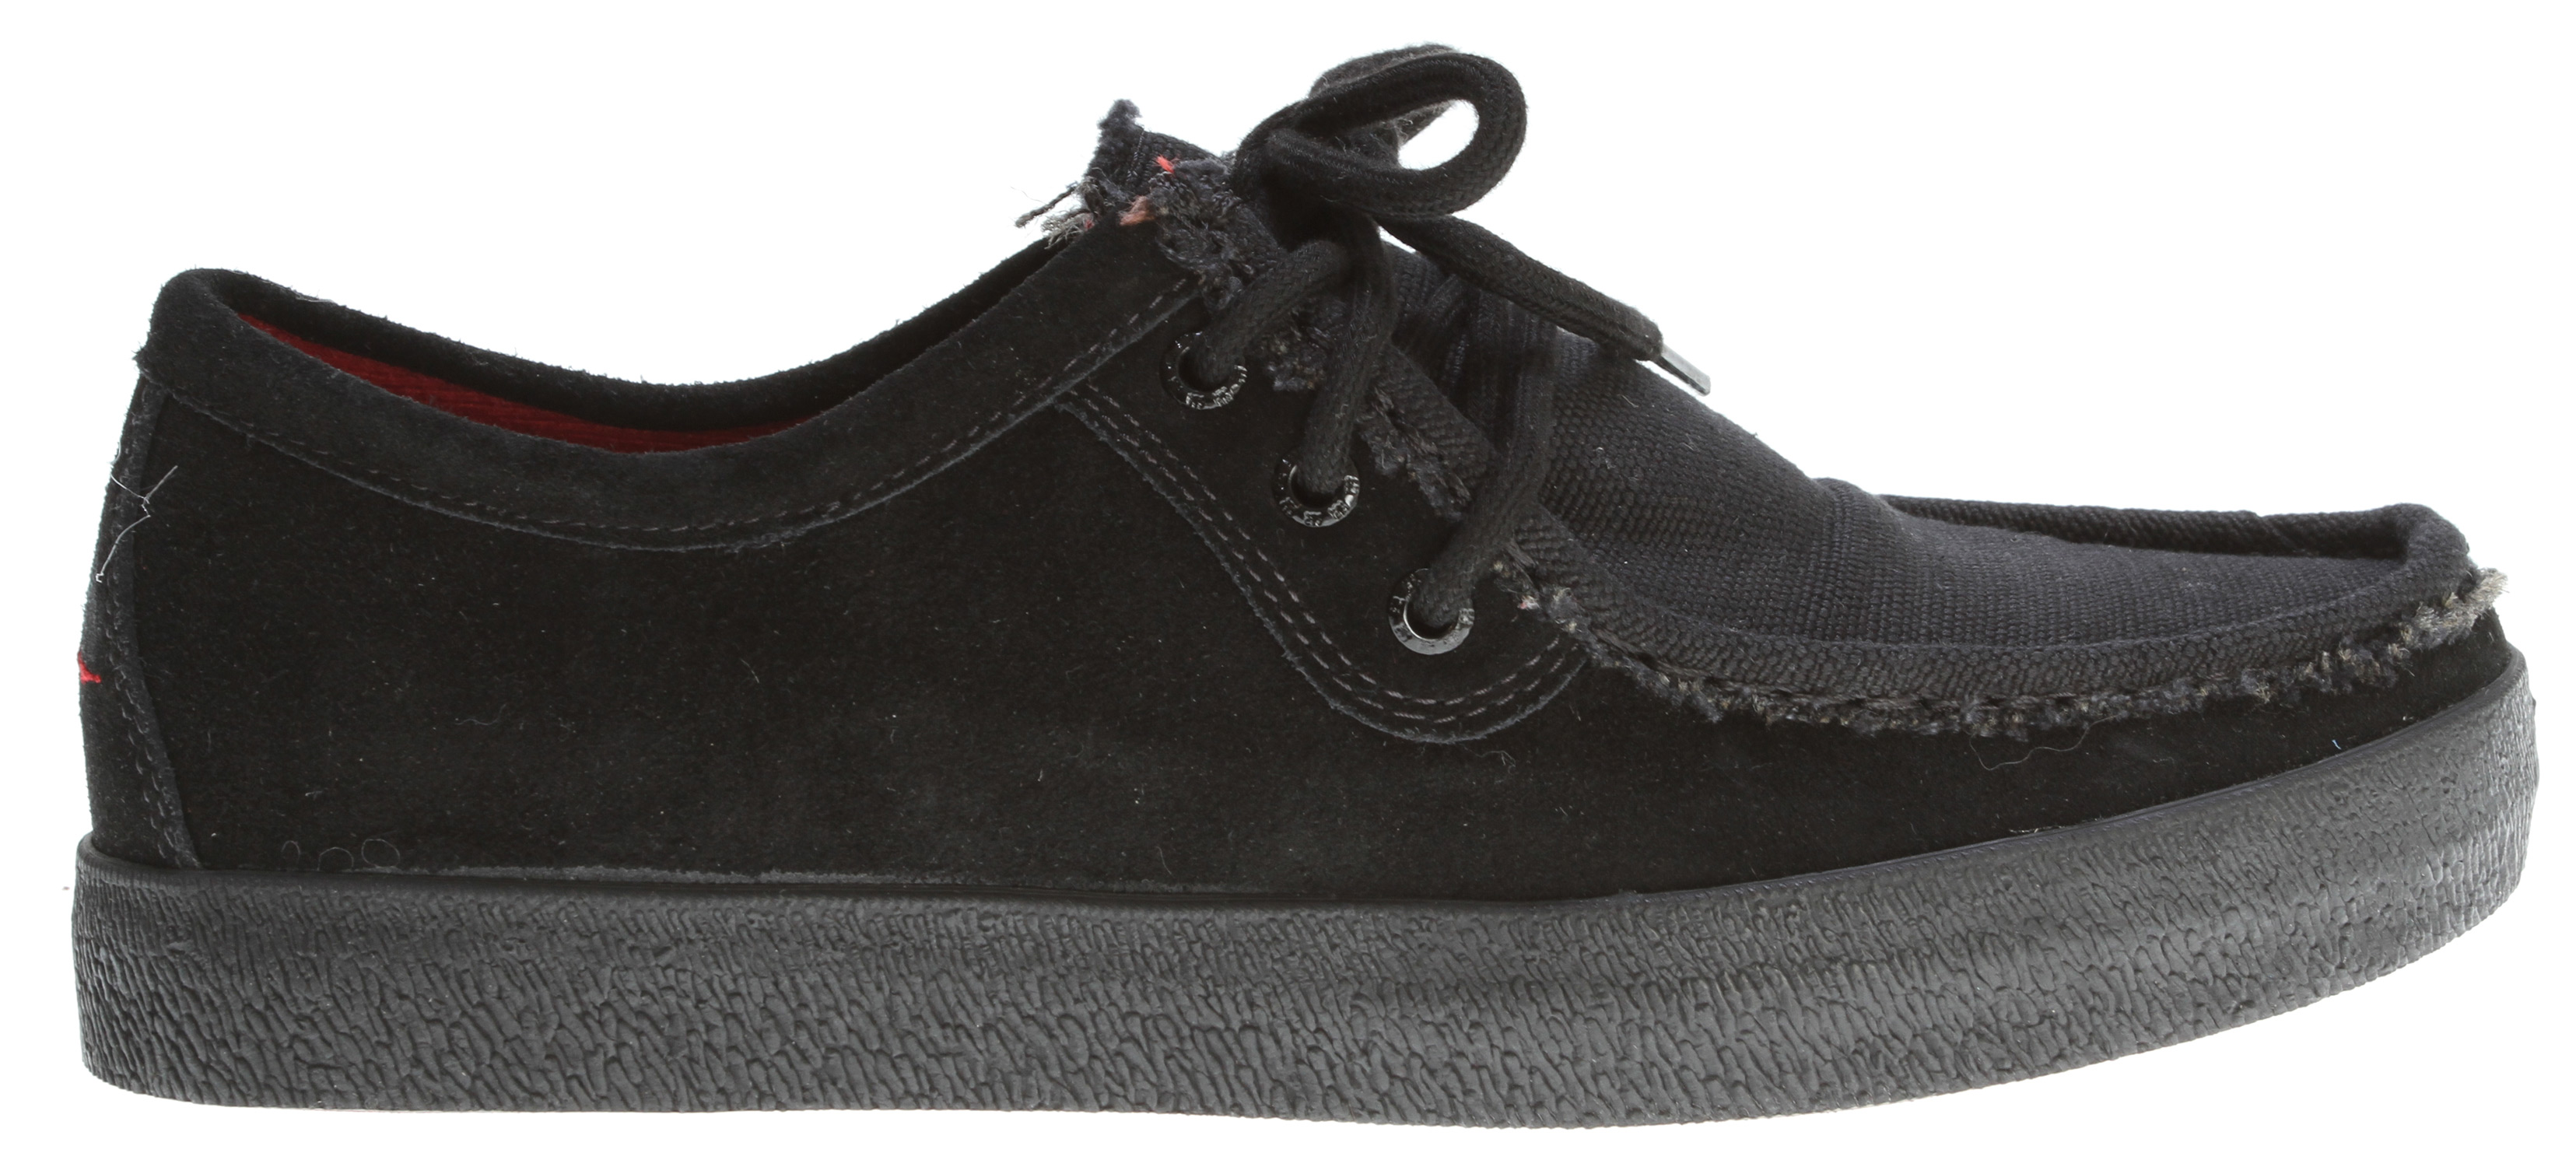 Skateboard The Ipath Cats Skate Shoes Shoe is a classic, true piece of IPATH'S heritage. They pulled out all the stops for this cult classic and made versions in high end black leather with sherpa lining and a brown nubuck. - $41.97